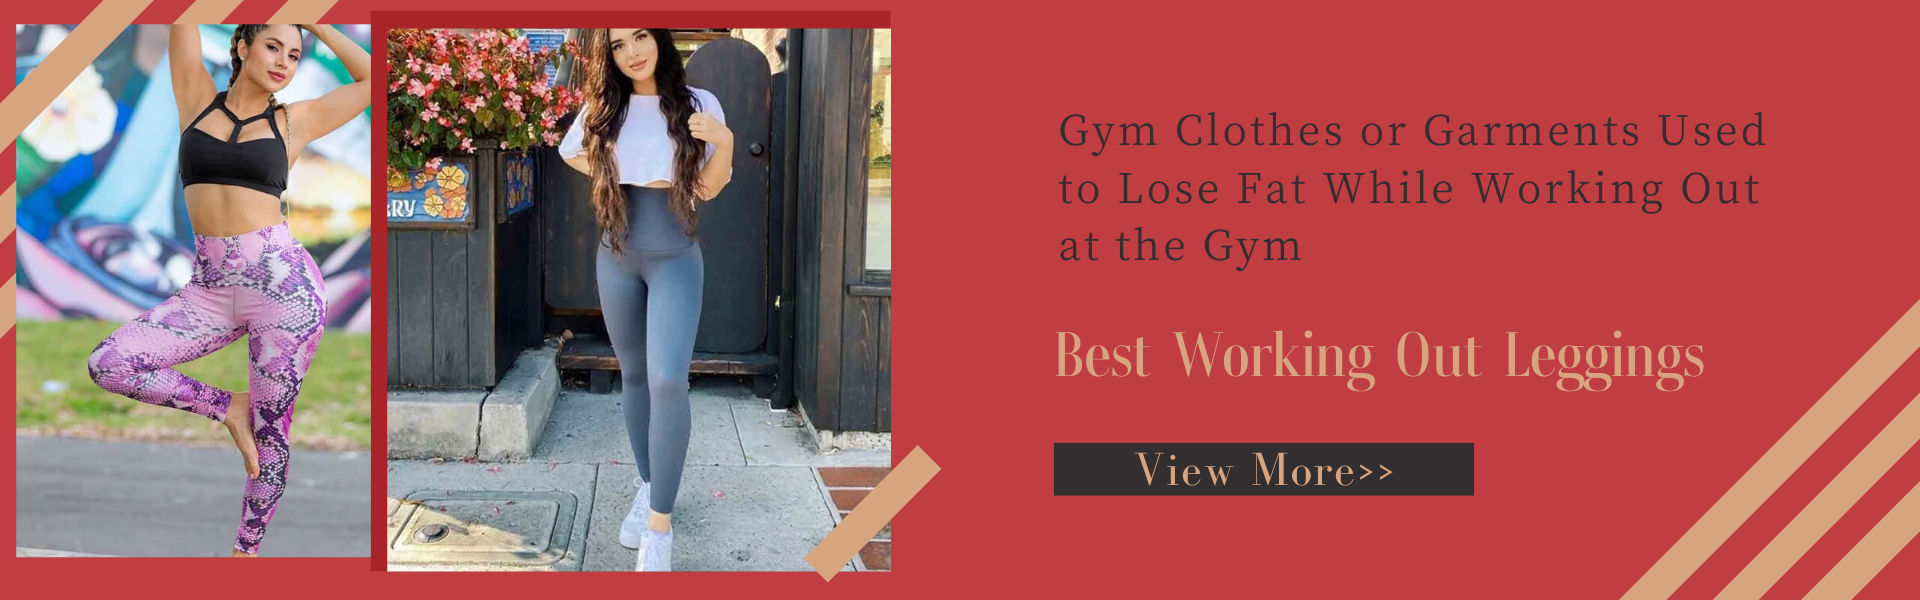 Gym Clothes or Garments Used to Lose Fat While Working Out at the Gym